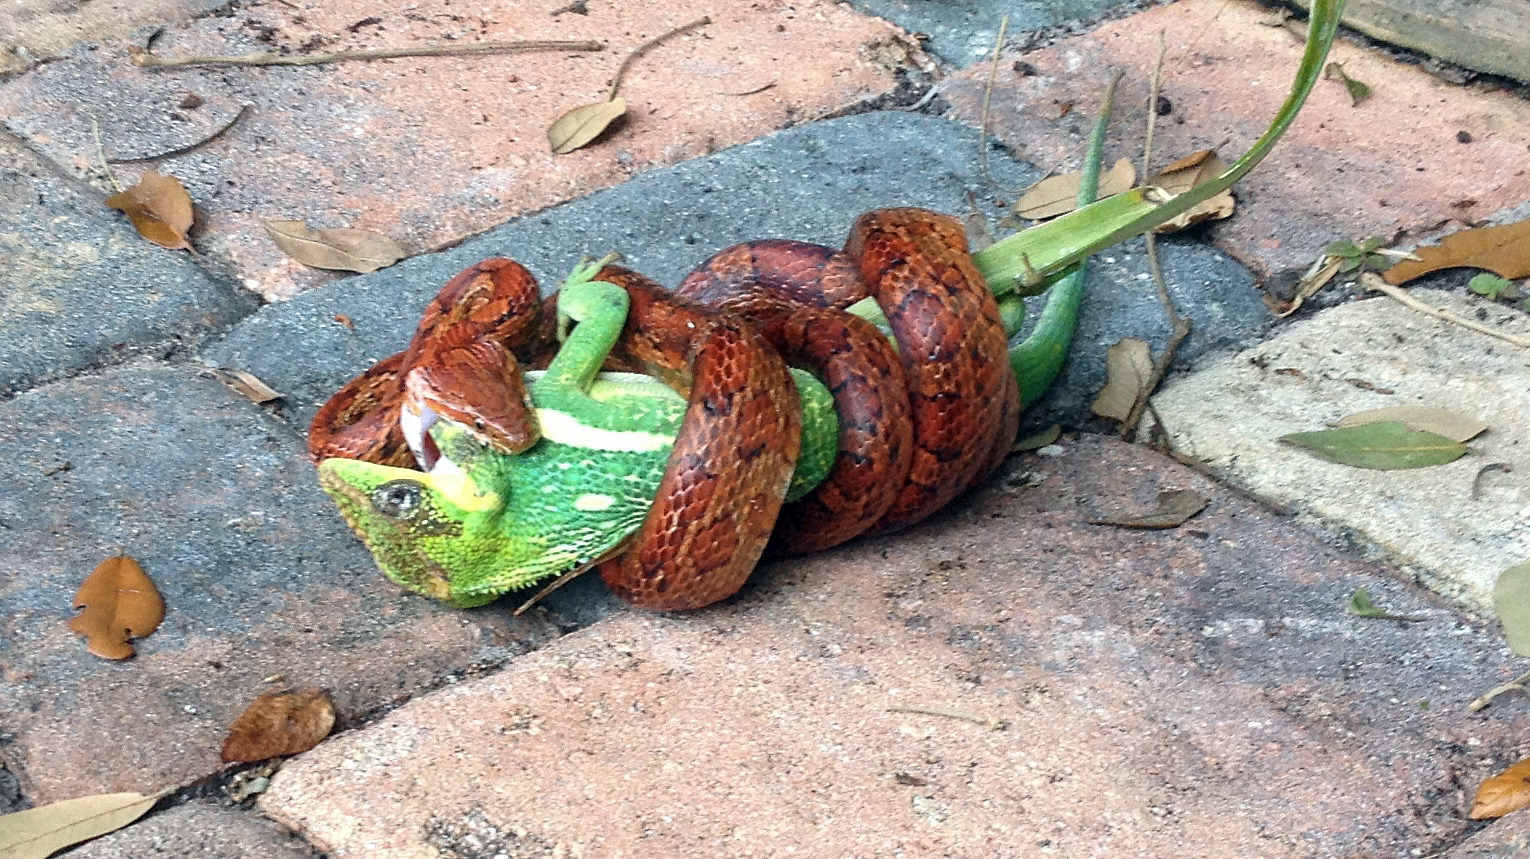 equestris being eaten by a snakex